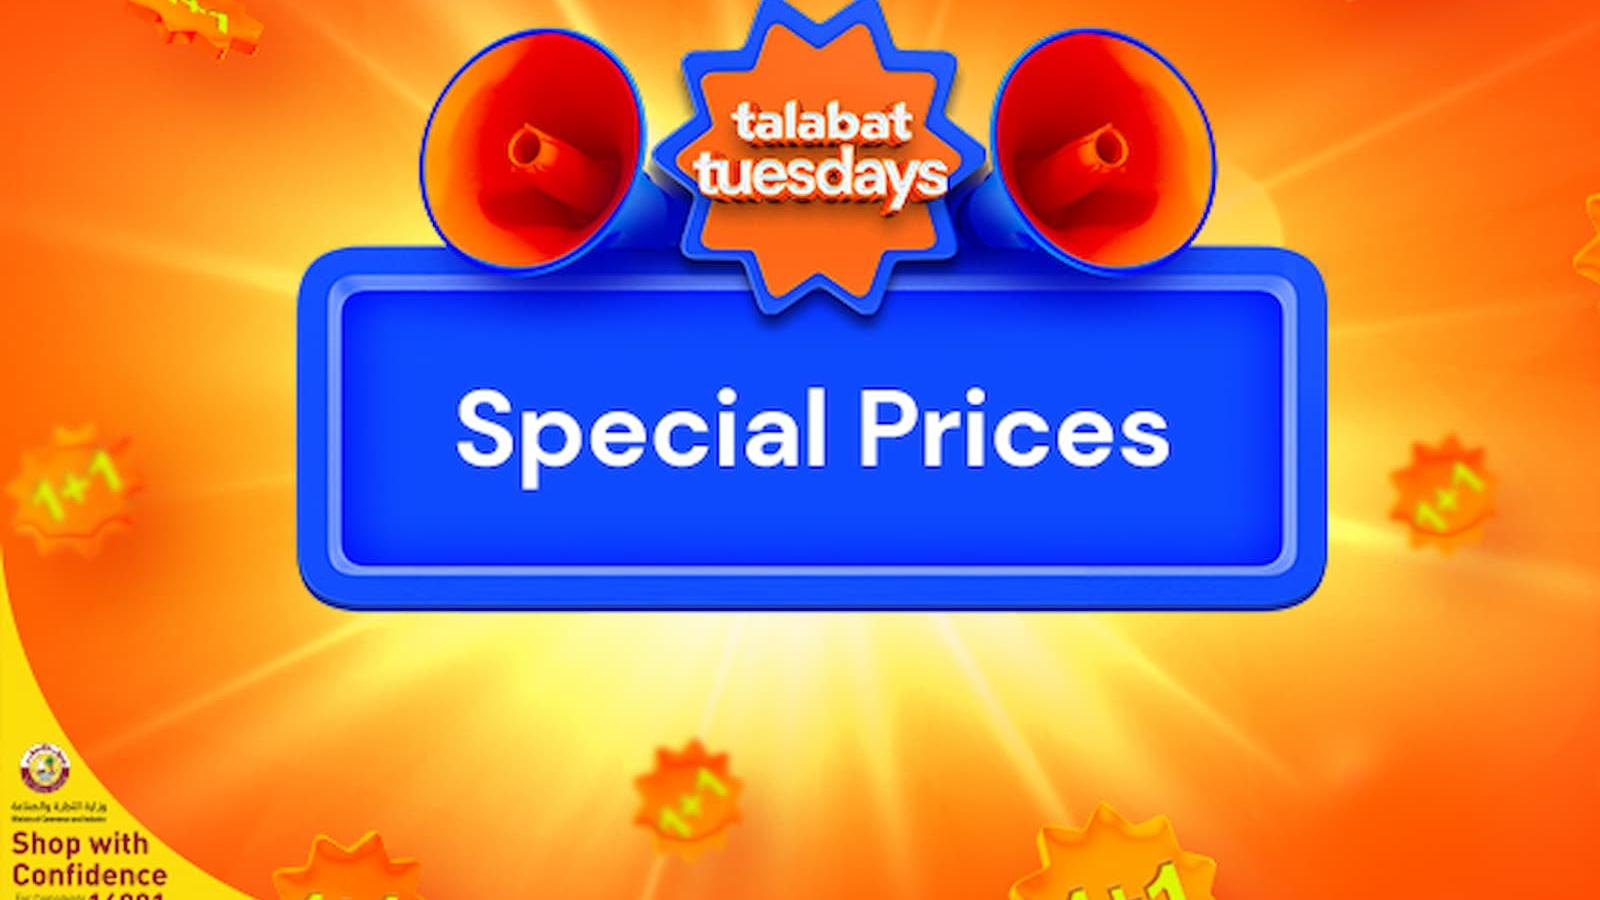 Don't miss these fantastic offers on talabat this month